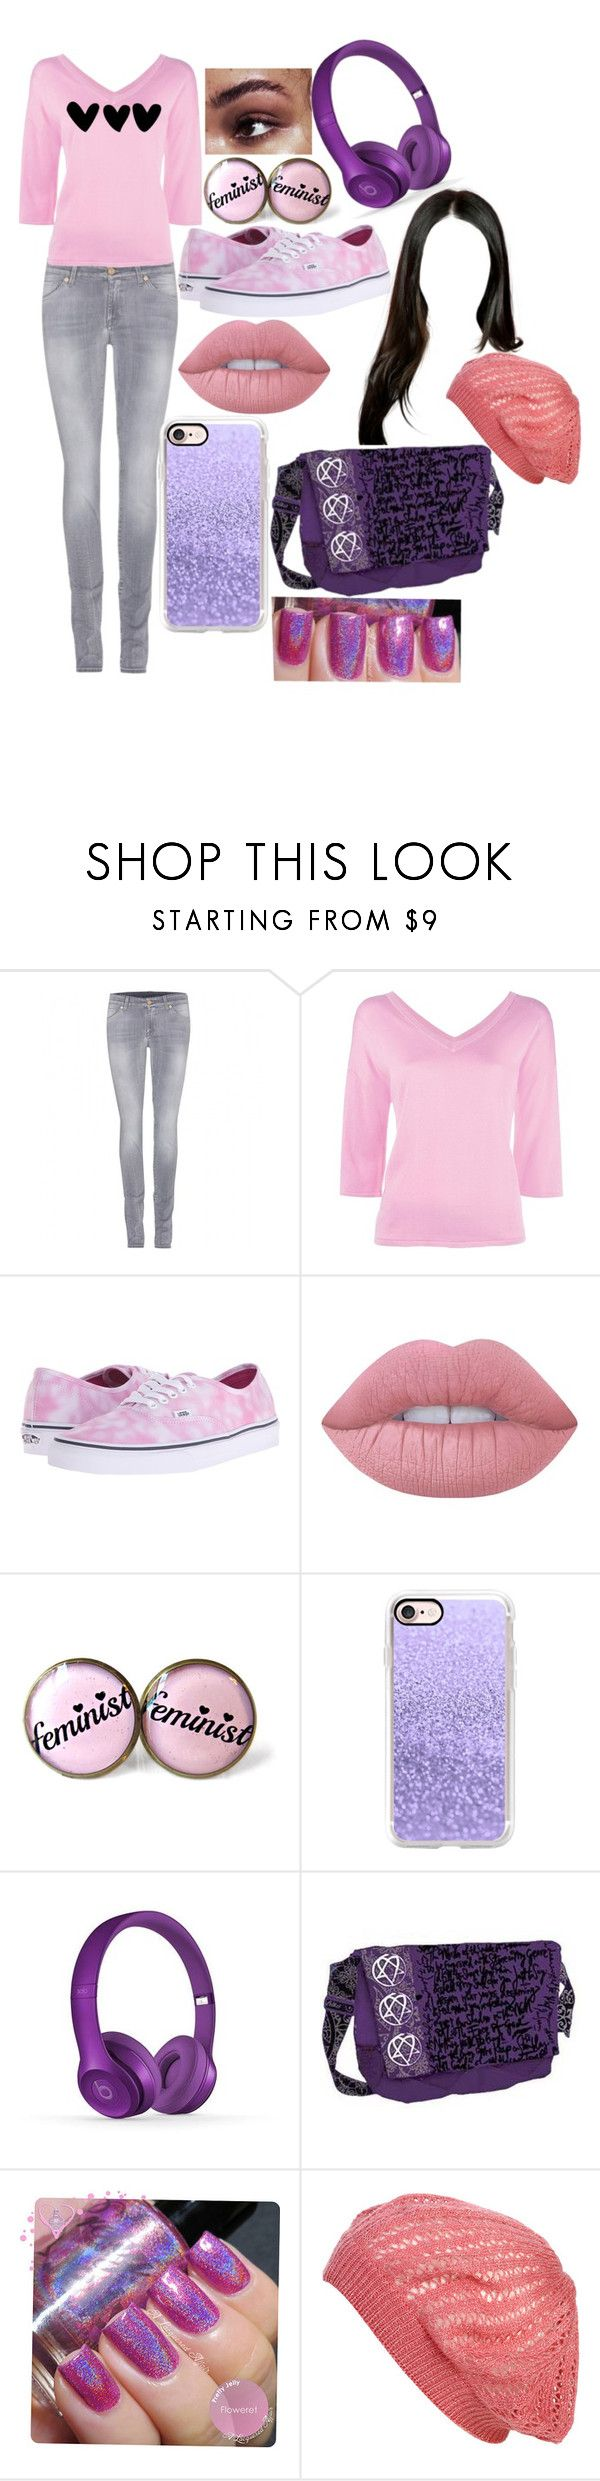 """Angelica Schuyler"" by lee-kenfin ❤ liked on Polyvore featuring 7 For All Mankind, Boutique Moschino, Vans, Lime Crime, Casetify, Wet Seal, cute, outfit, gorgeous and fanfic"